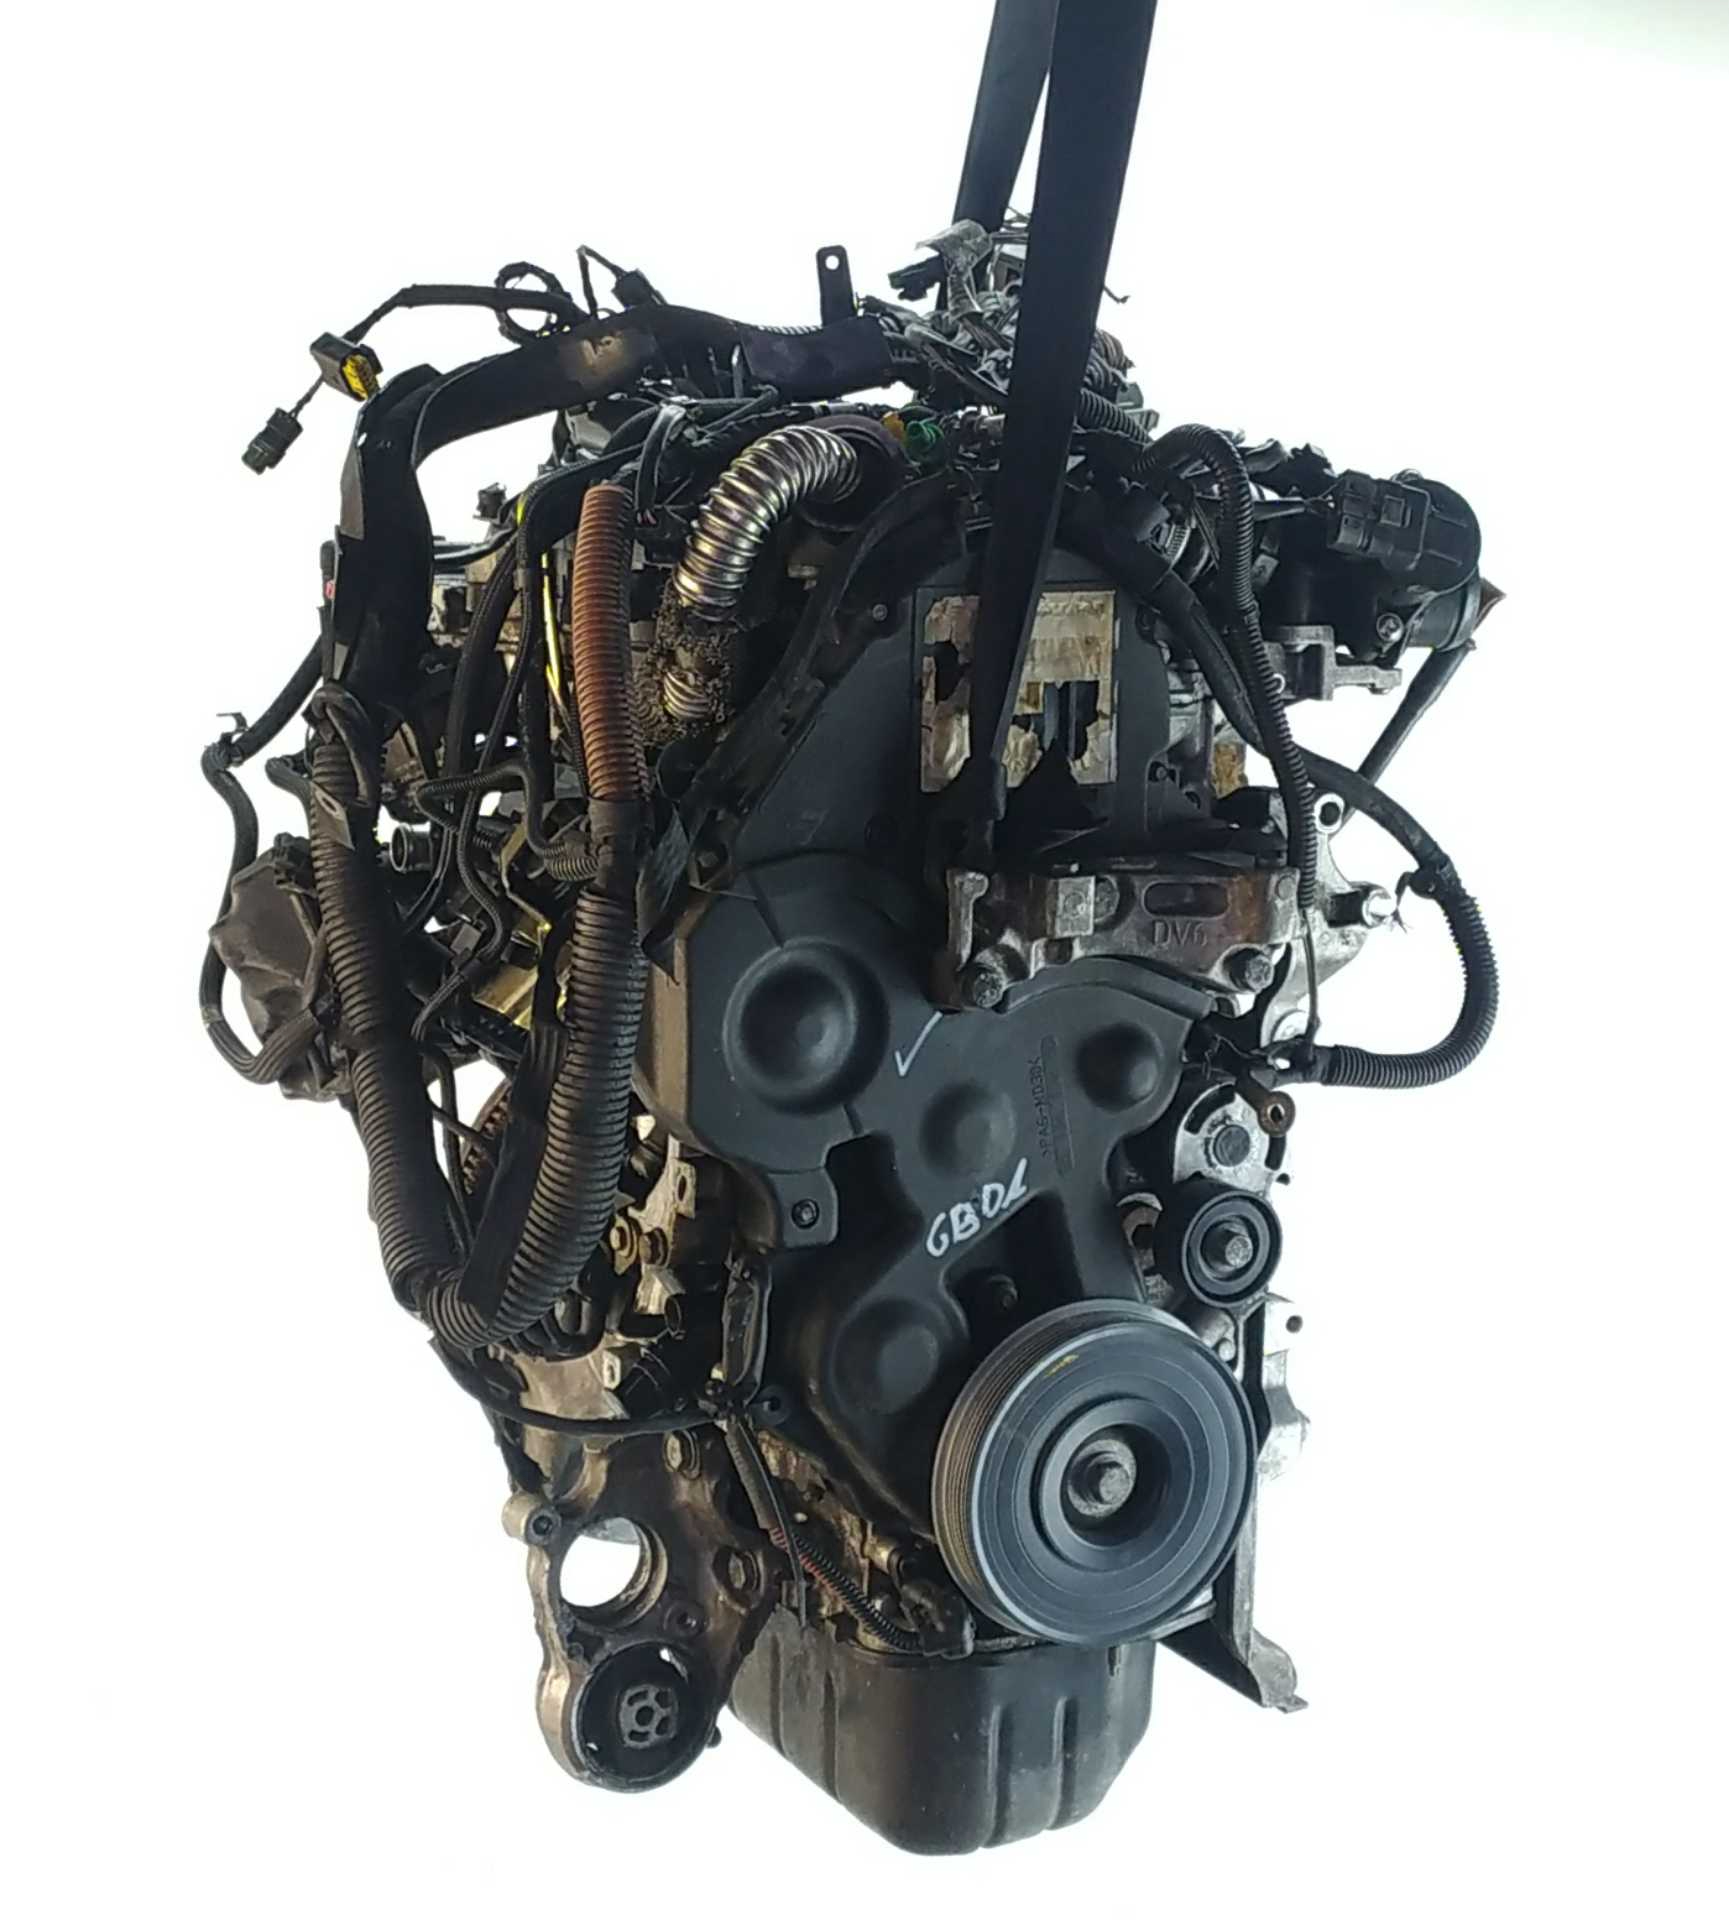 MOTOR COMPLETO FORD C-MAX 1.6 TDCi (80 KW / 109 CV) (02.2007 - 09.2010)